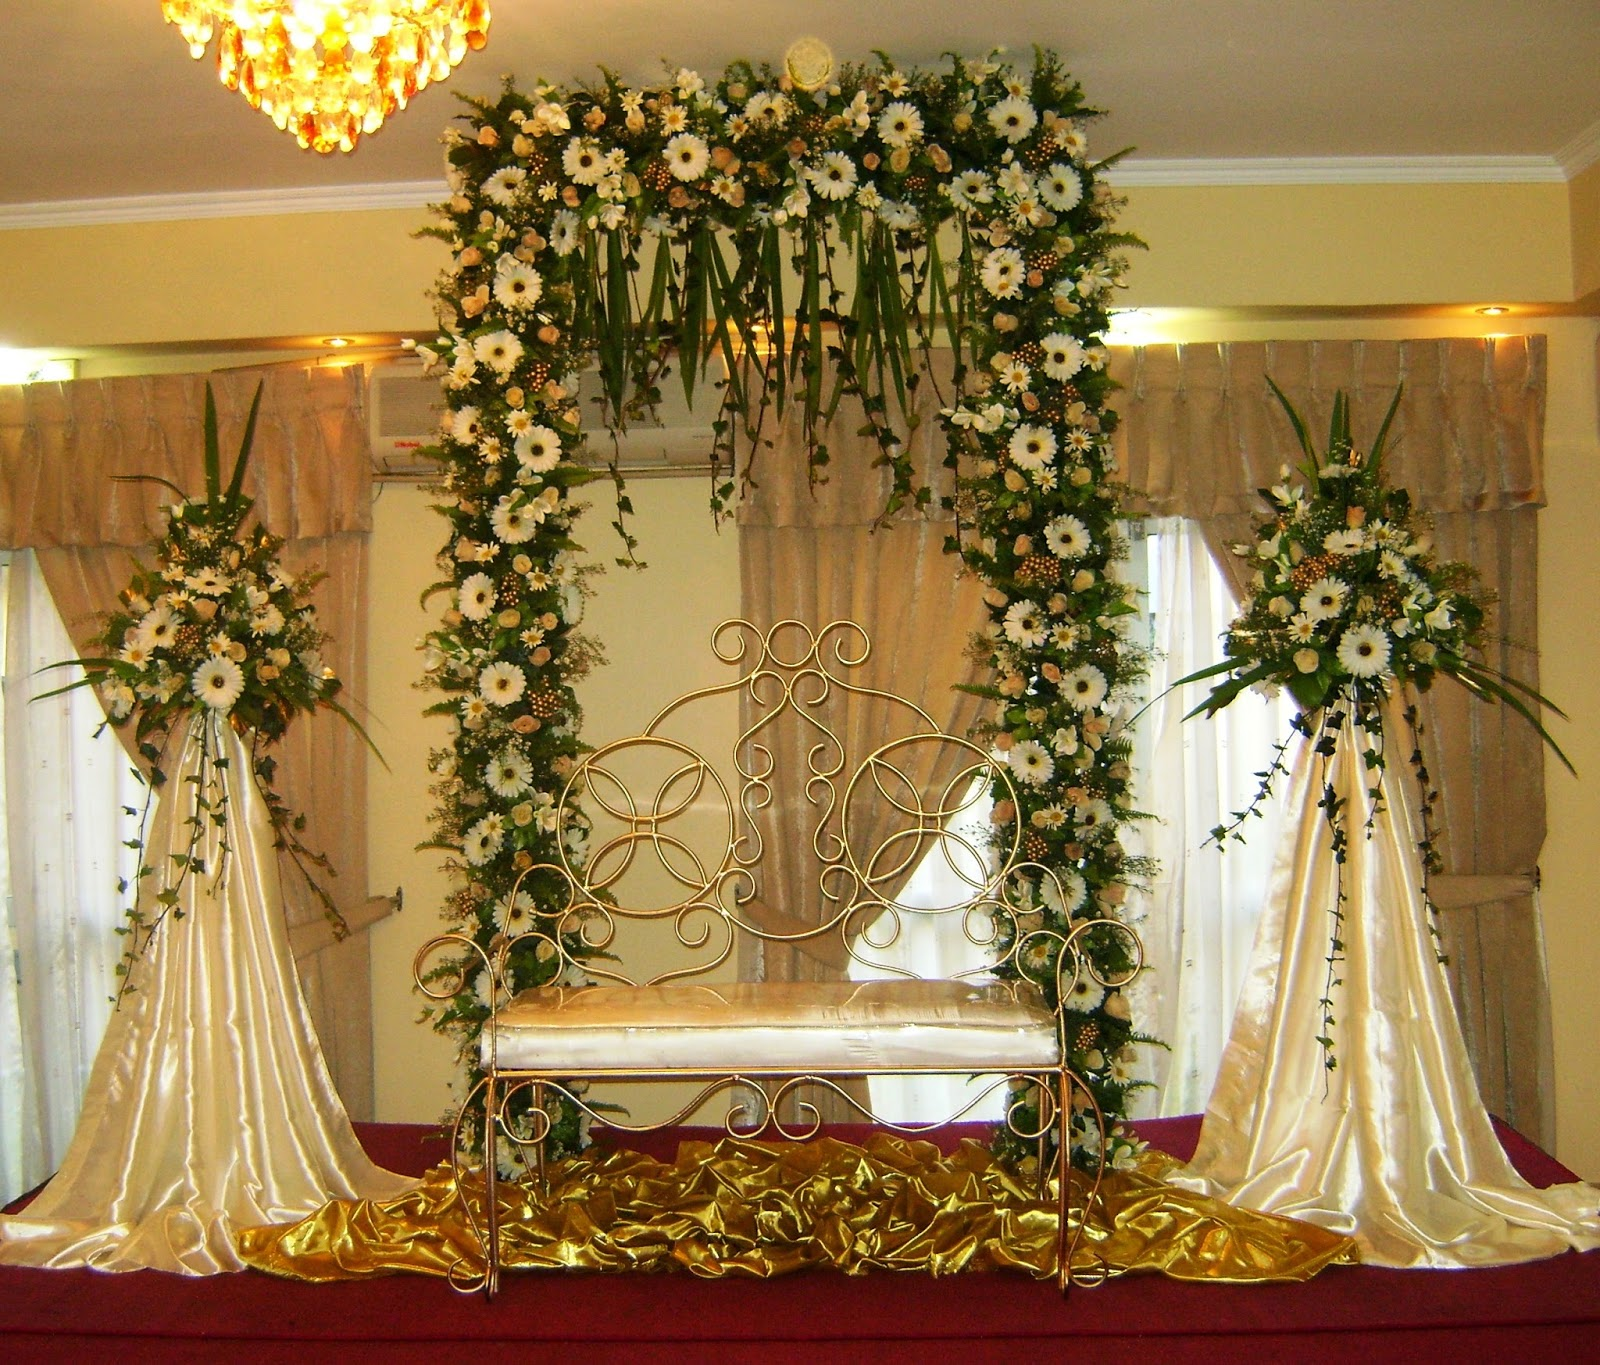 Vismaya Wedding Settee backs